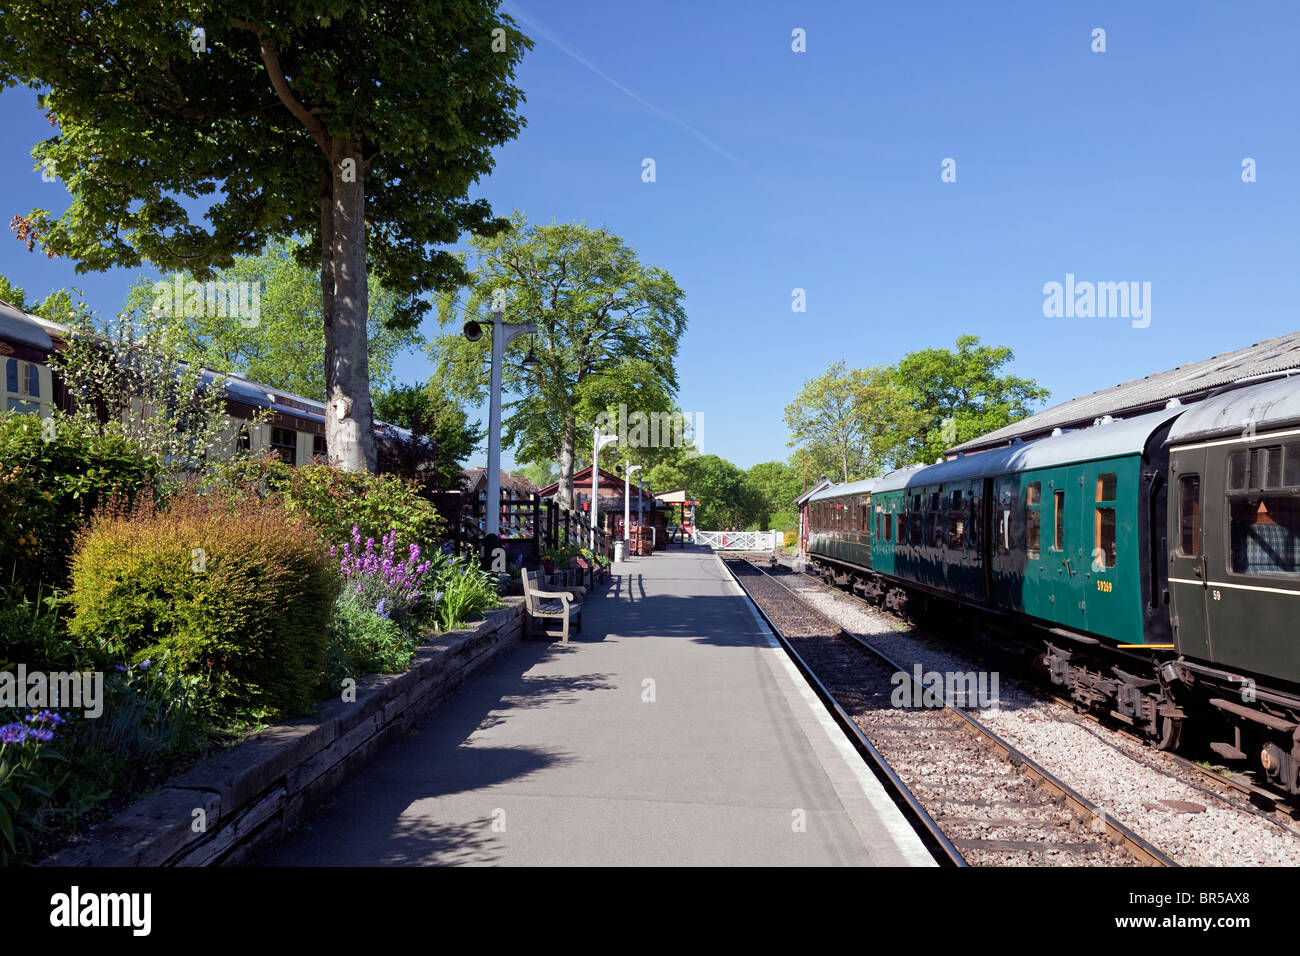 England Kent Tenterden Station on the Kent & East Sussex preserved steam railway - Stock Image